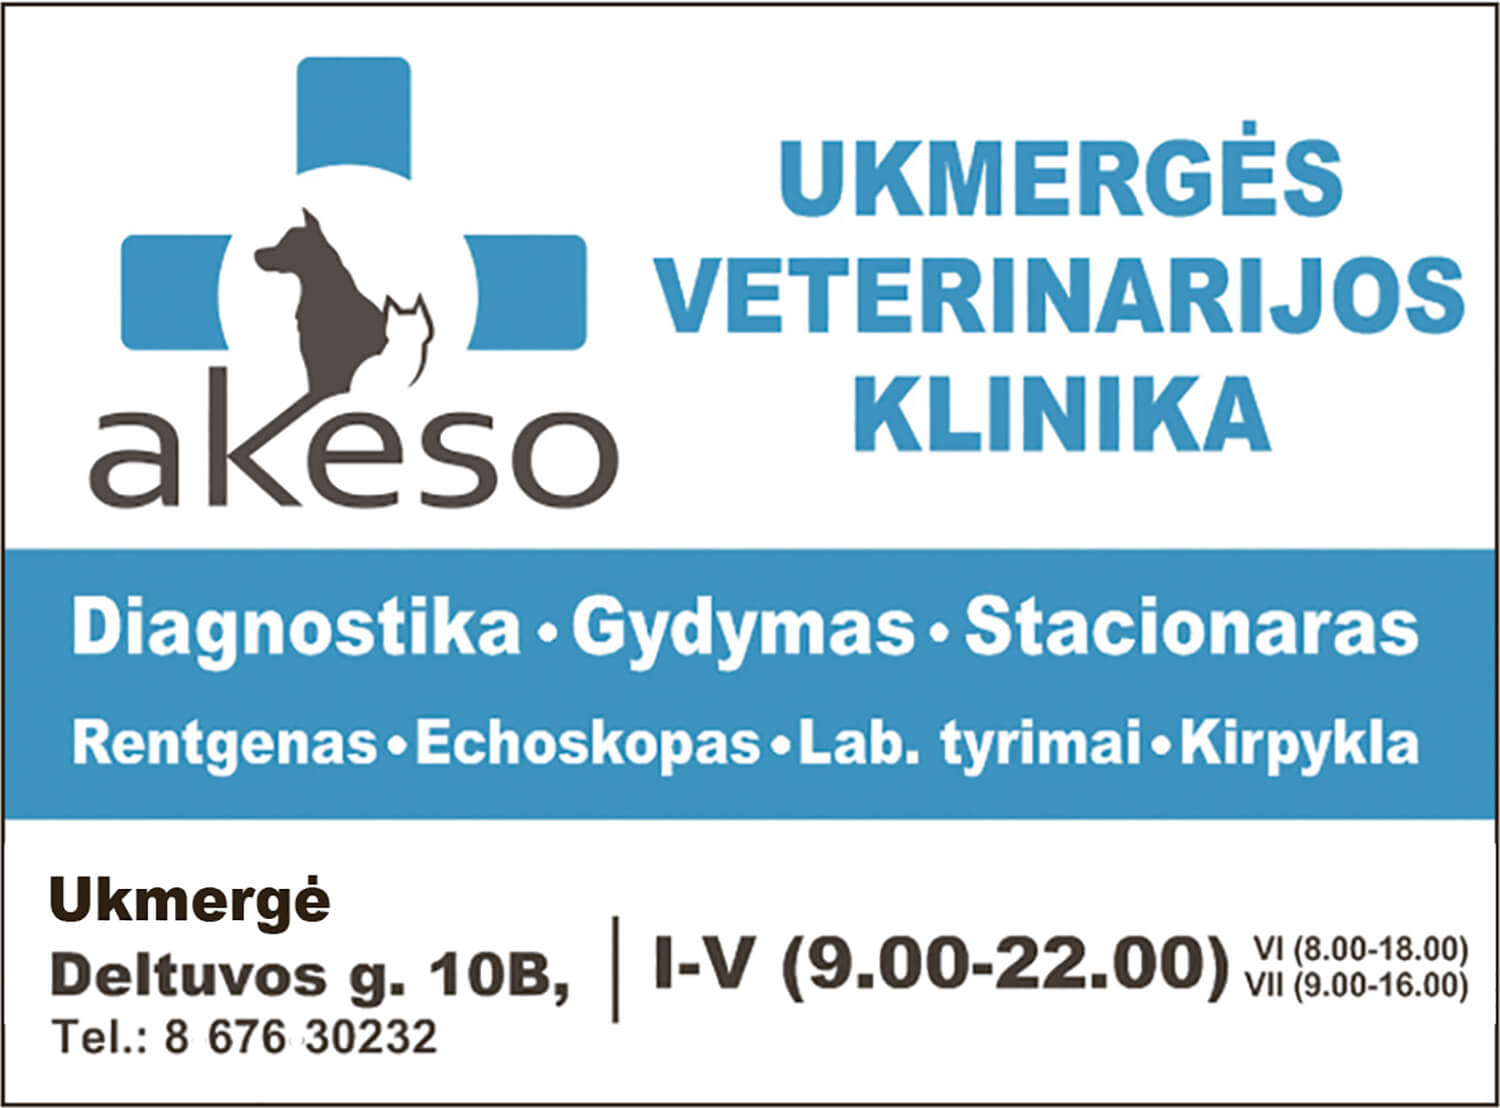 Veterinarijos klinika